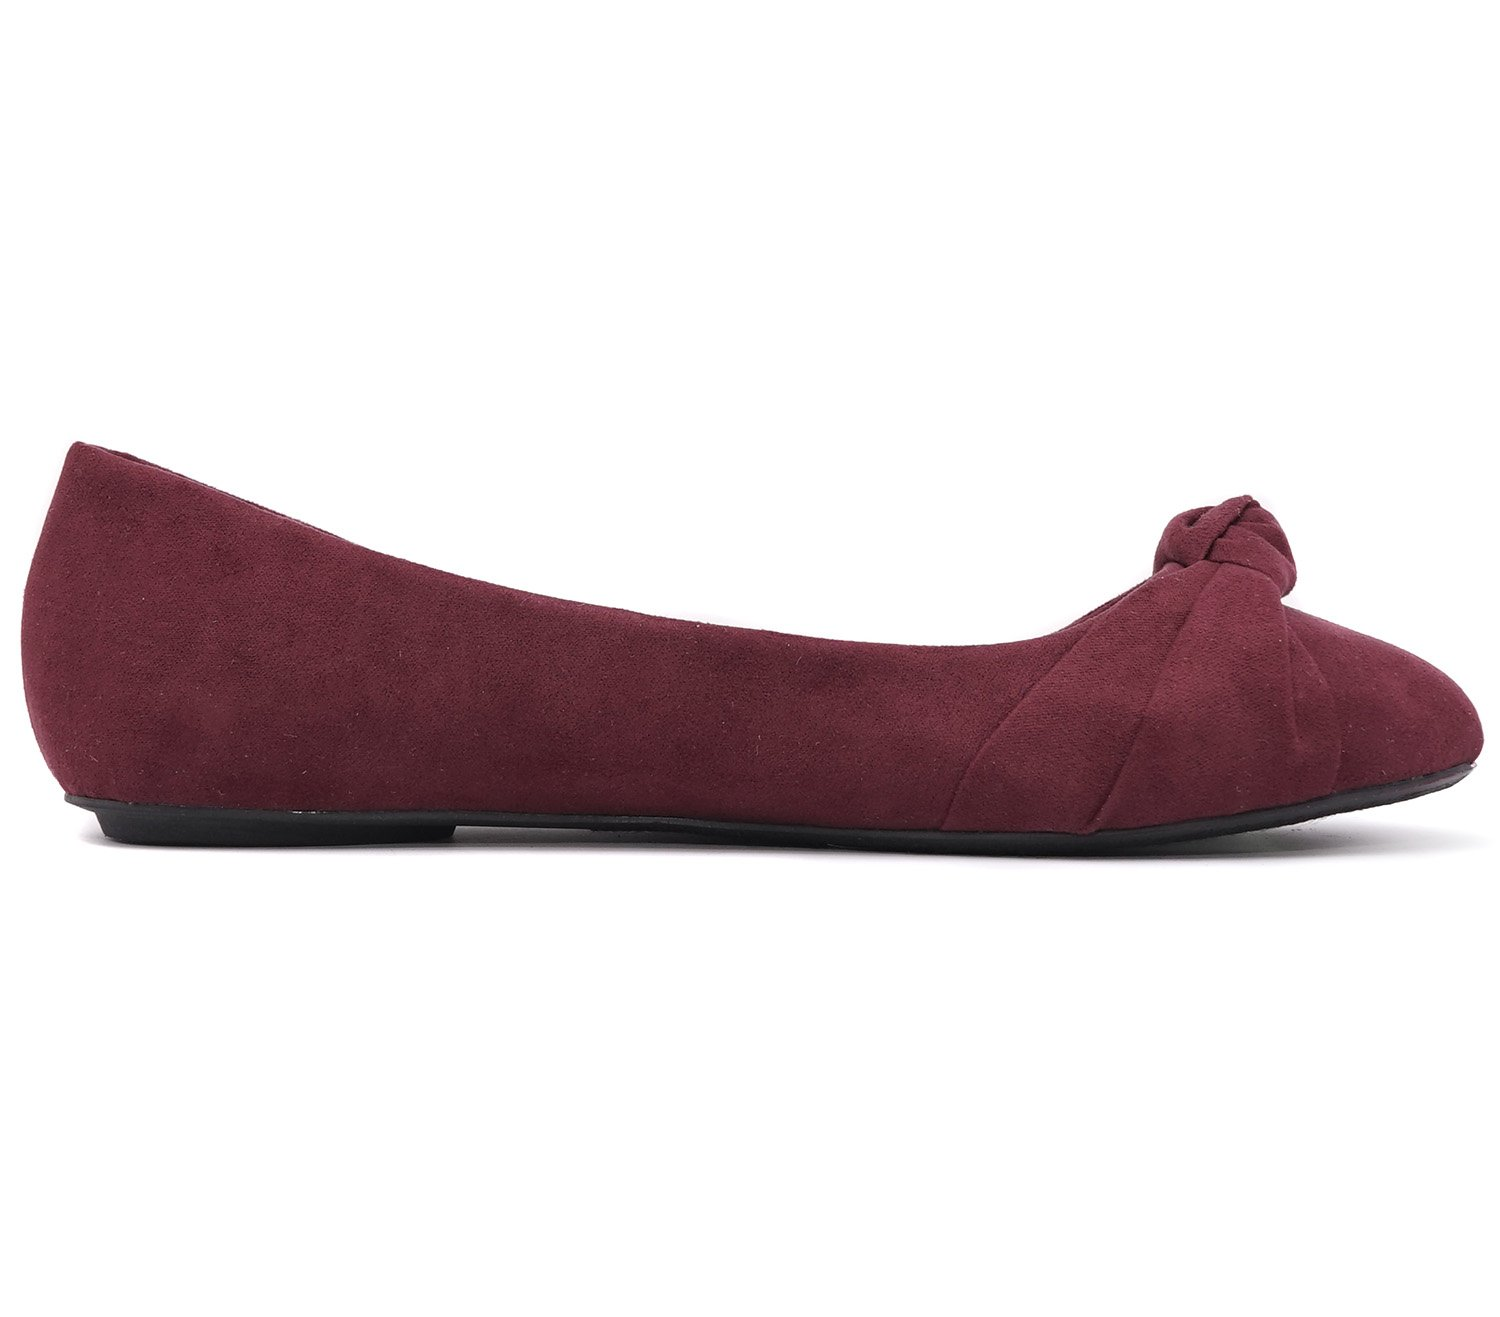 9b2f343f5379 Charles Albert Womens Knotted Front Canvas Round Toe Ballet Flats